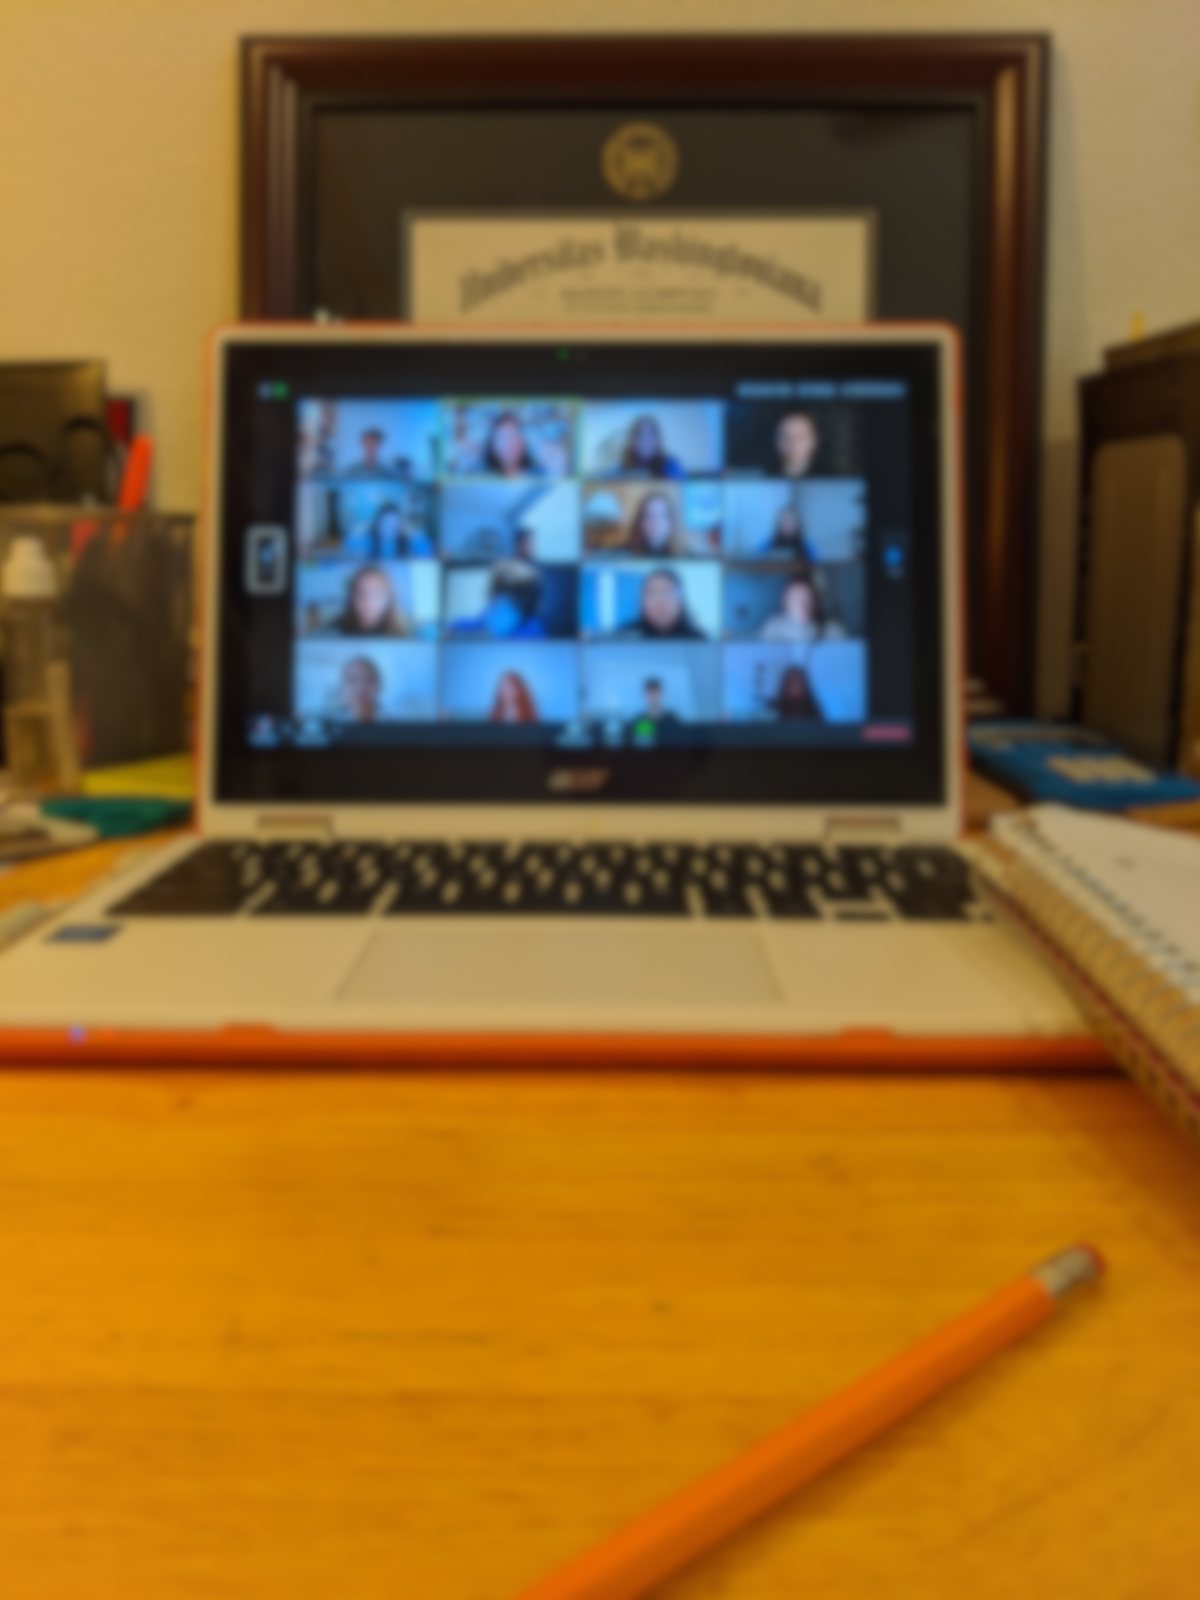 A blurred out Zoom meeting running on a laptop